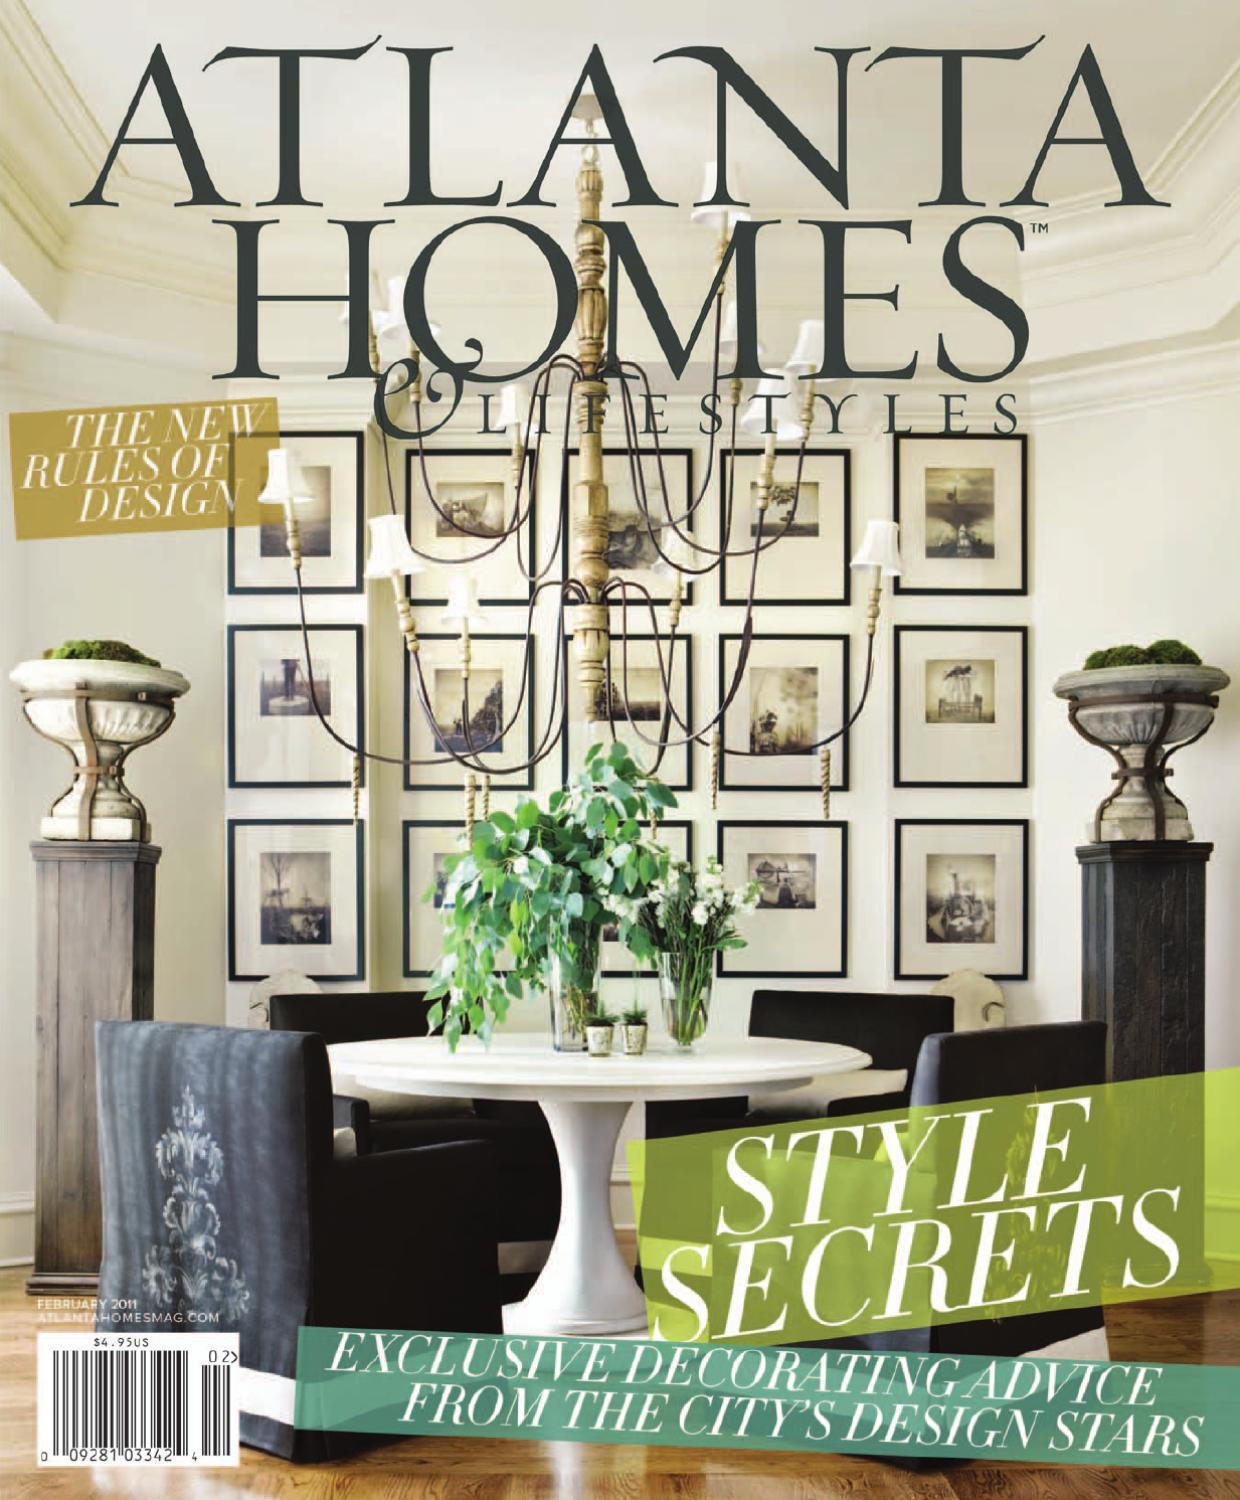 Atlanta Homes Lifestyles By Network Communications Inc